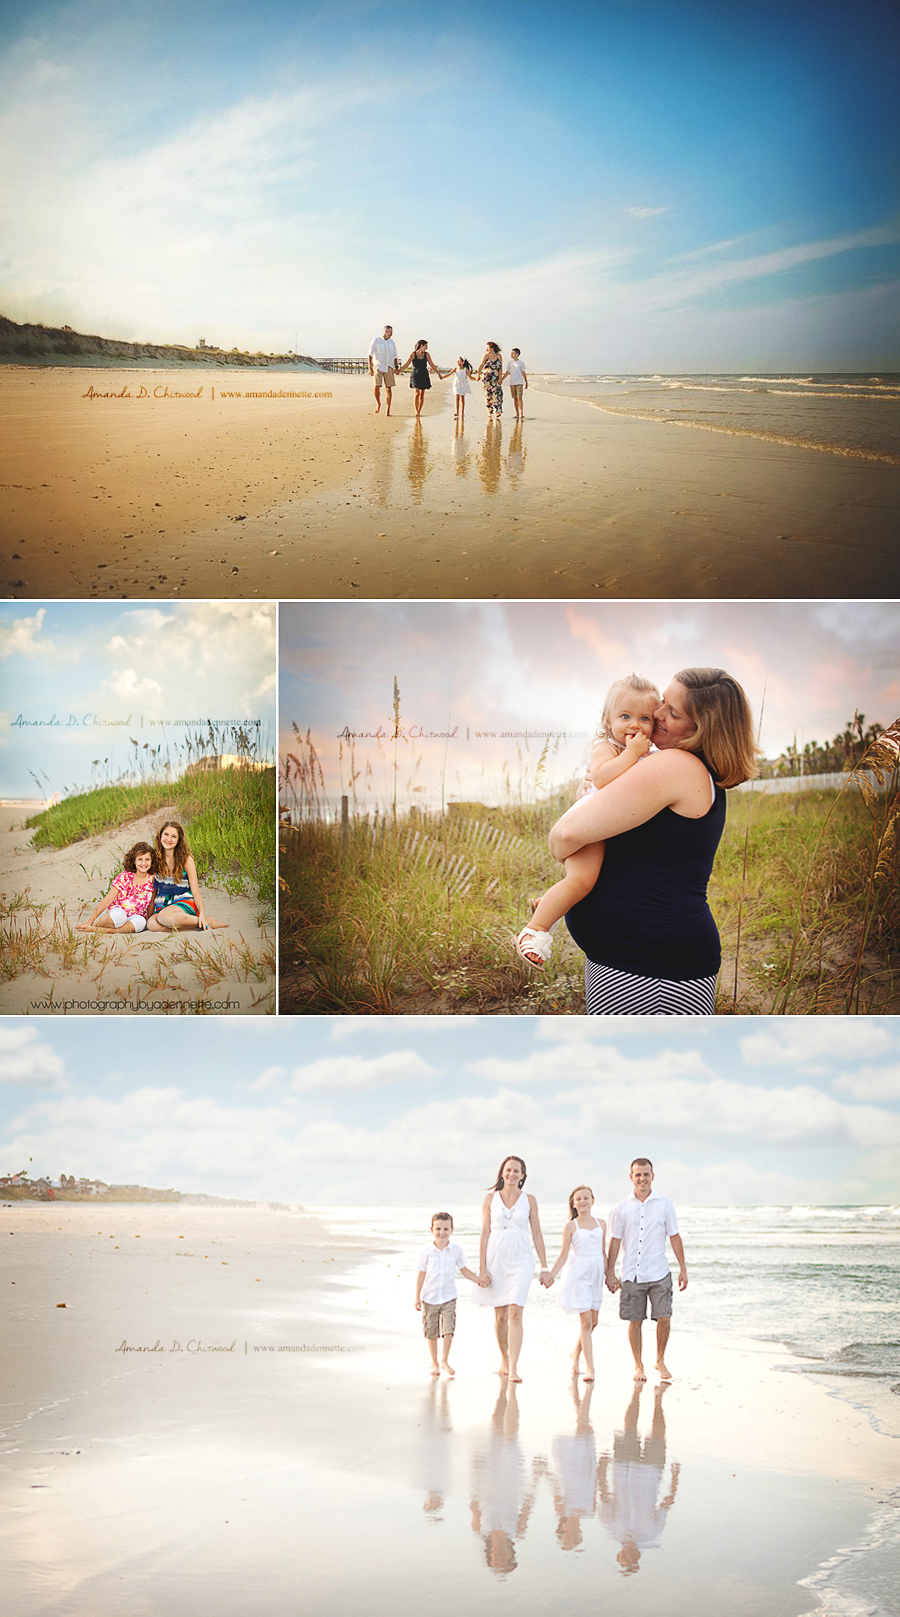 Jacksonville, FL Family Photographer - Jacksonville, FL Beach Photographer